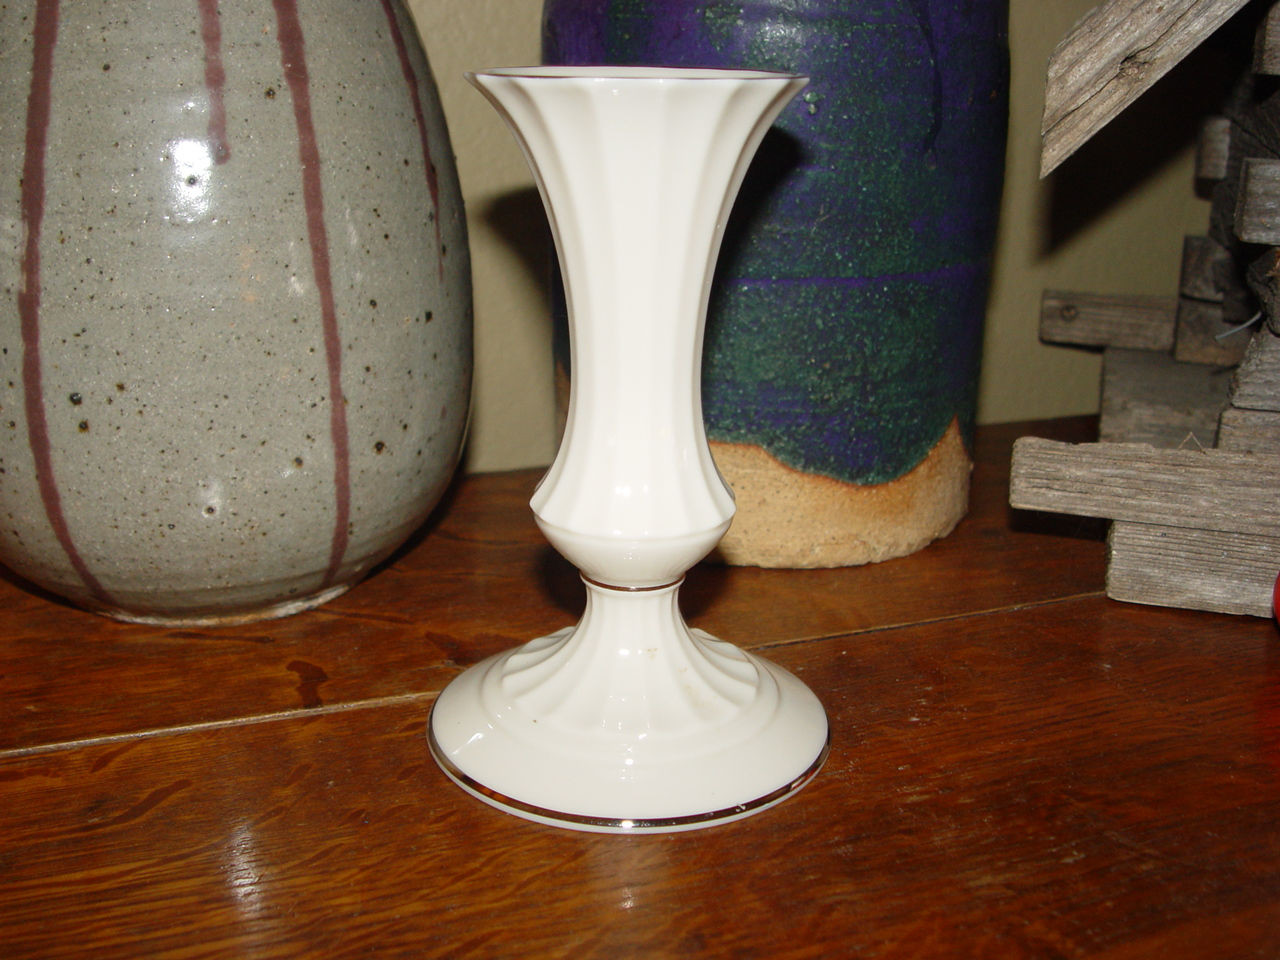 satsuma vase markings of back n time antiques antiques page with lenox candleholder candlestick